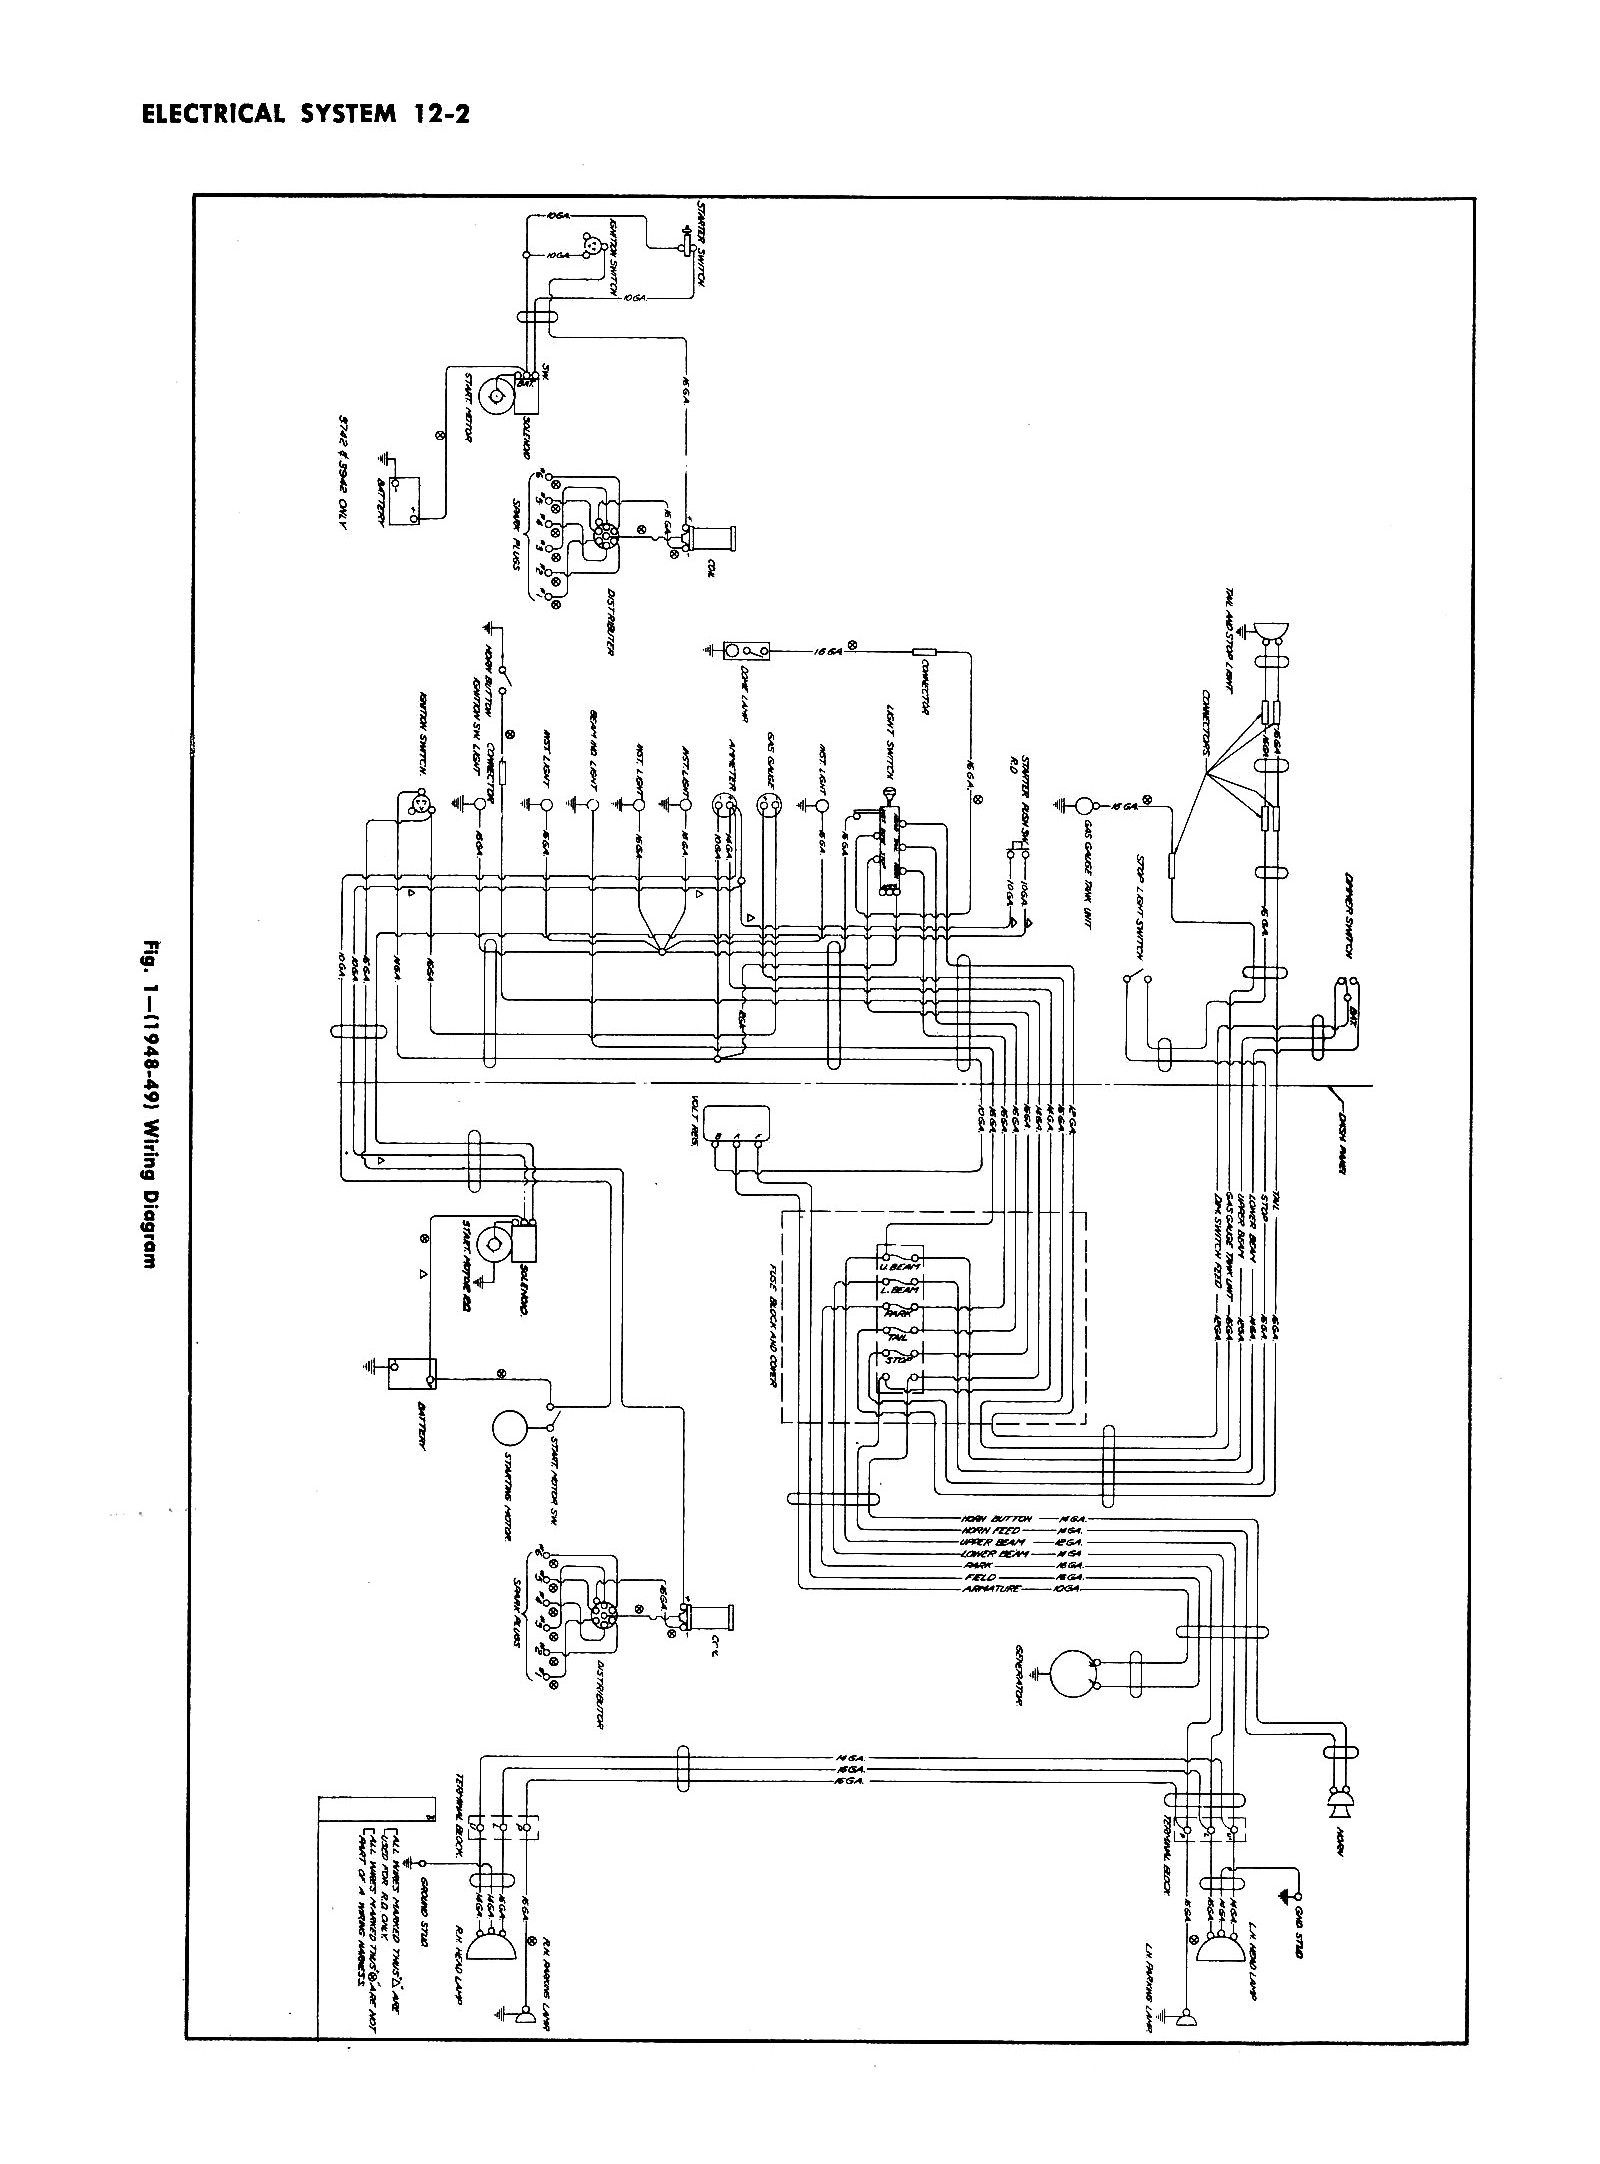 [DIAGRAM] 1987 Chevy Wiring Diagram FULL Version HD